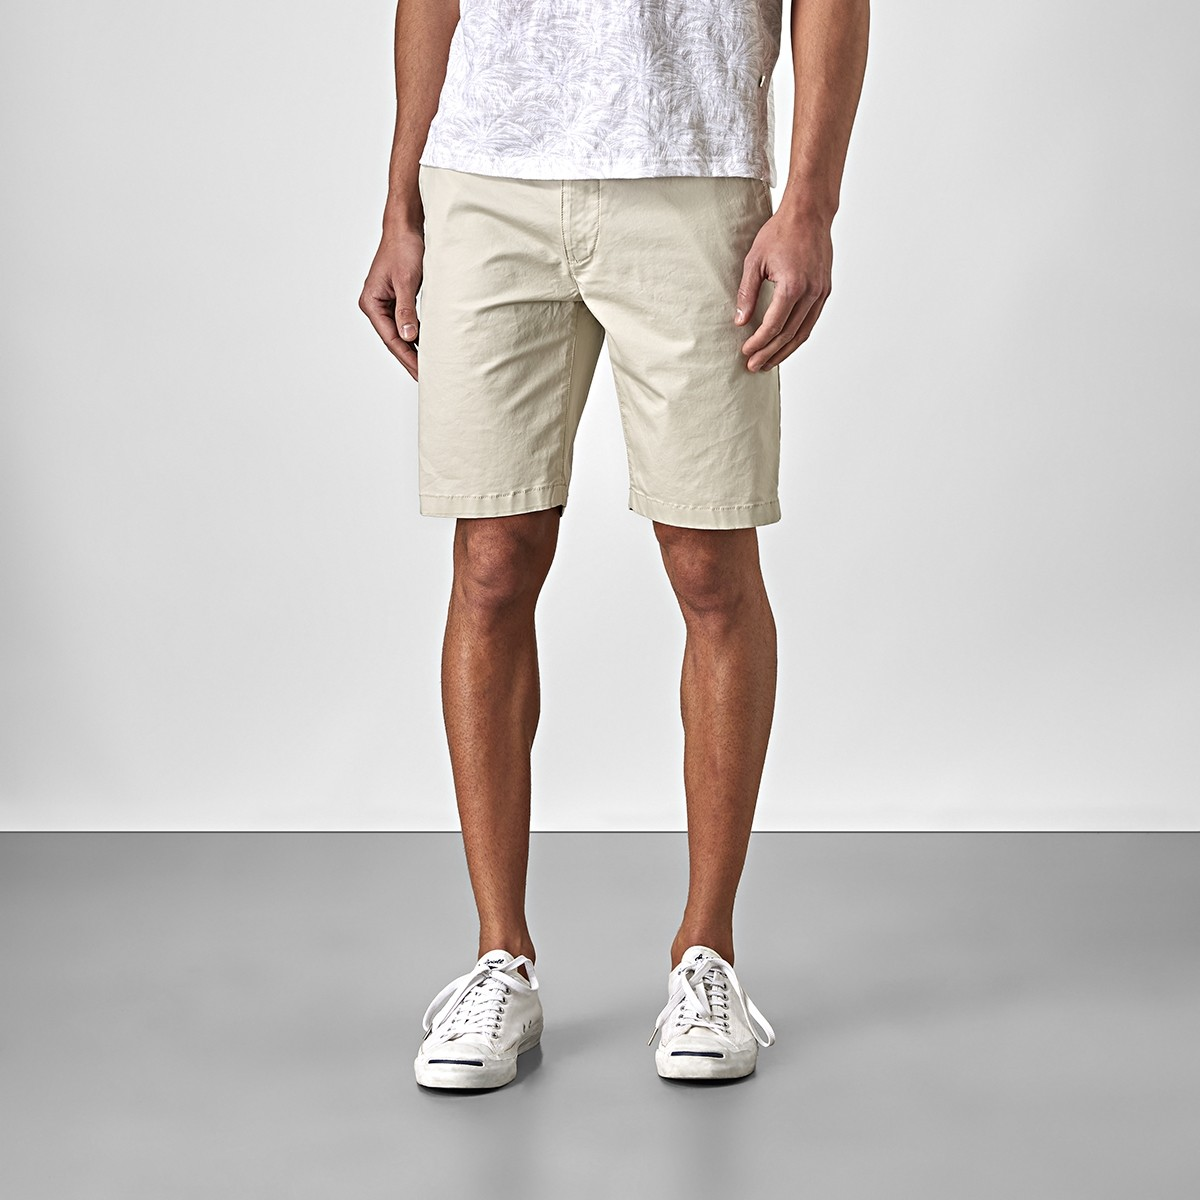 Bowery Chinos Shorts Ljusbeige | East West | Brothers.se